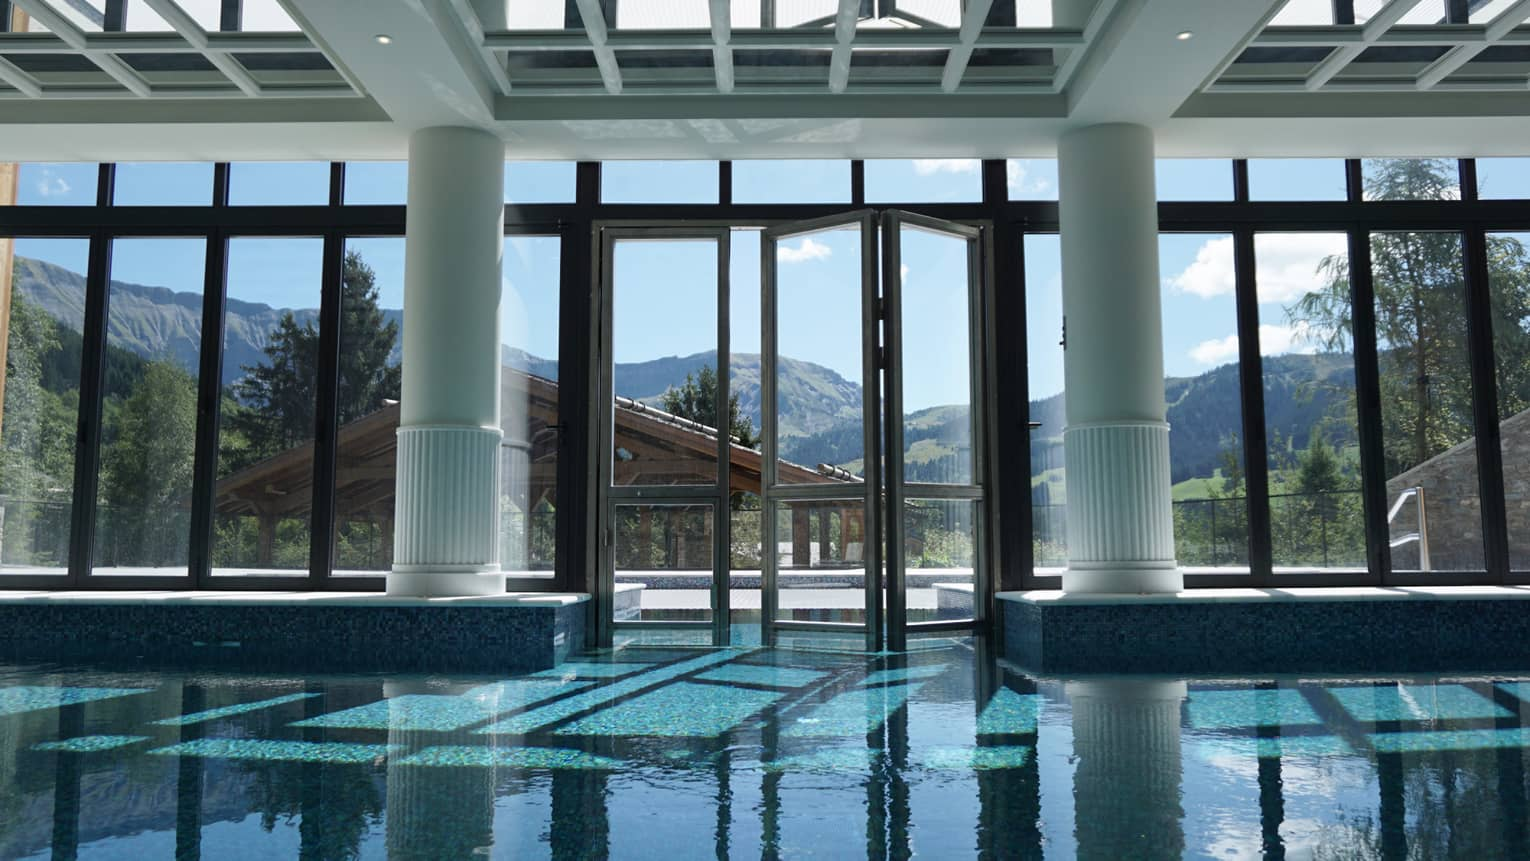 Large white pillars, beams, skylights over indoor swimming pool